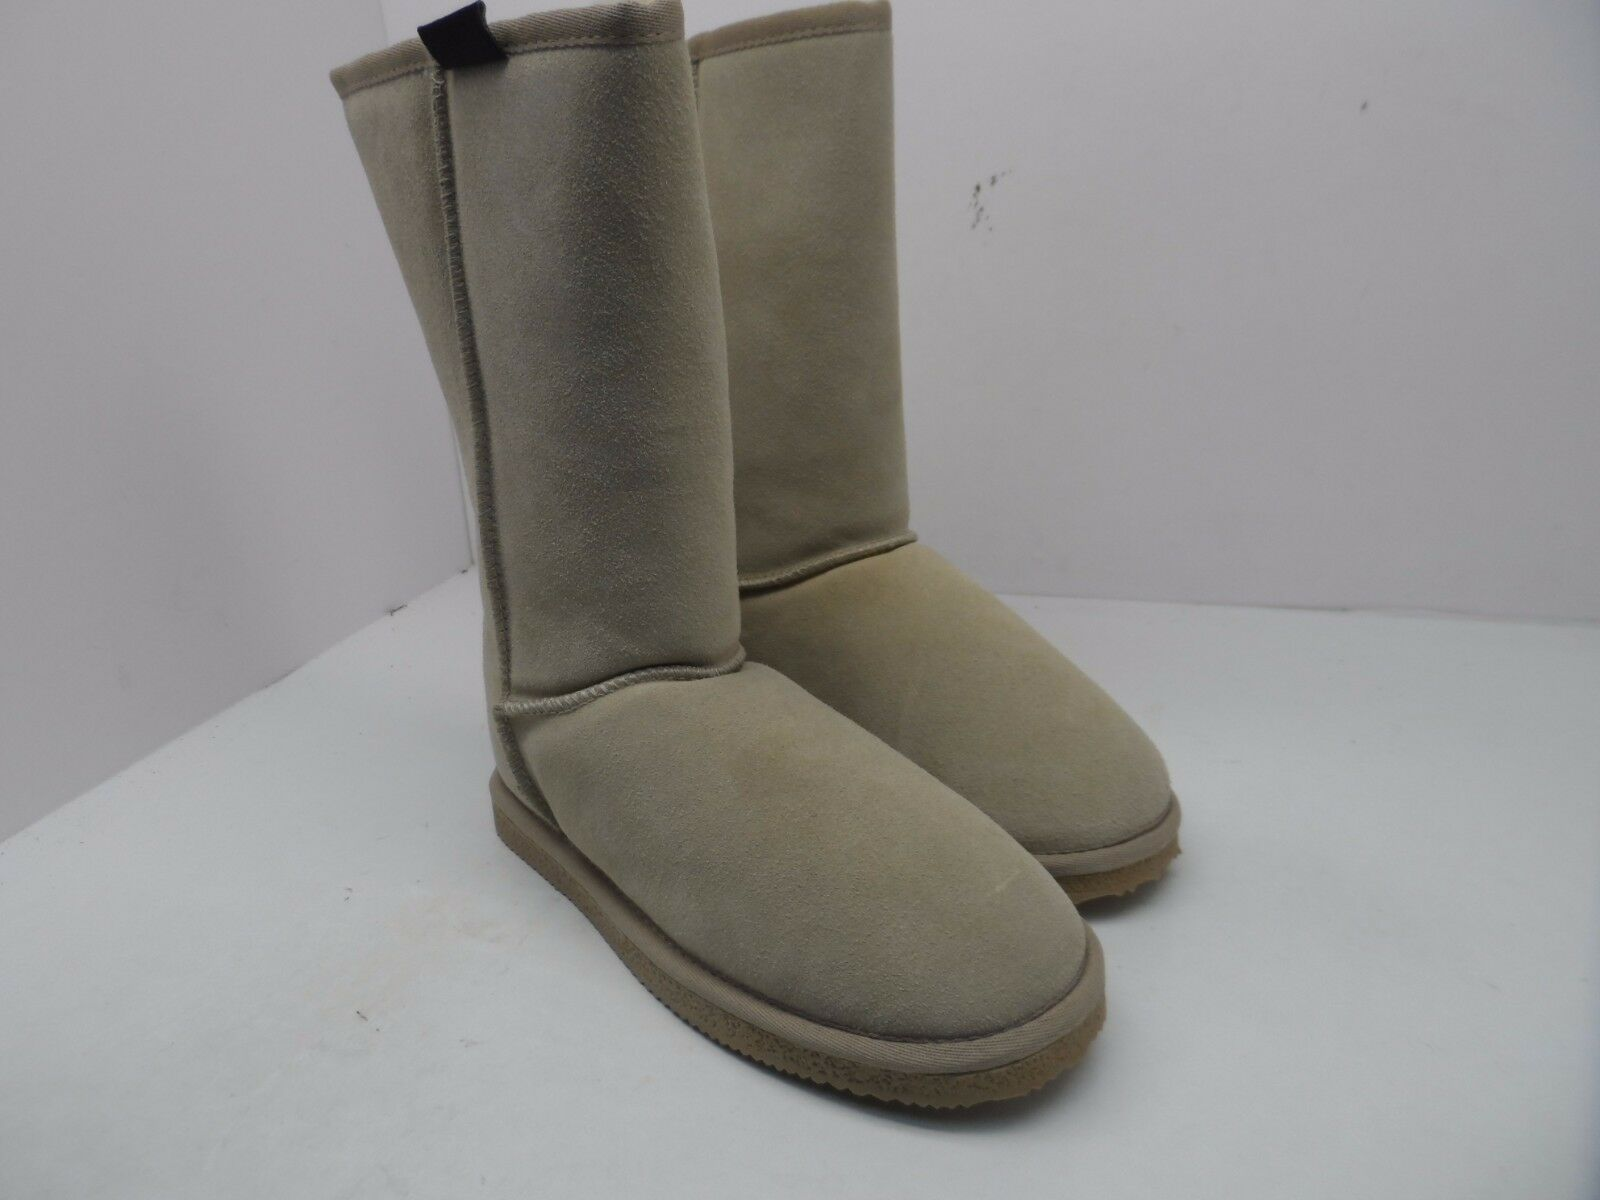 "Climate X Women's 10"" Faux Fur Lined Boots Sands Size 7M"